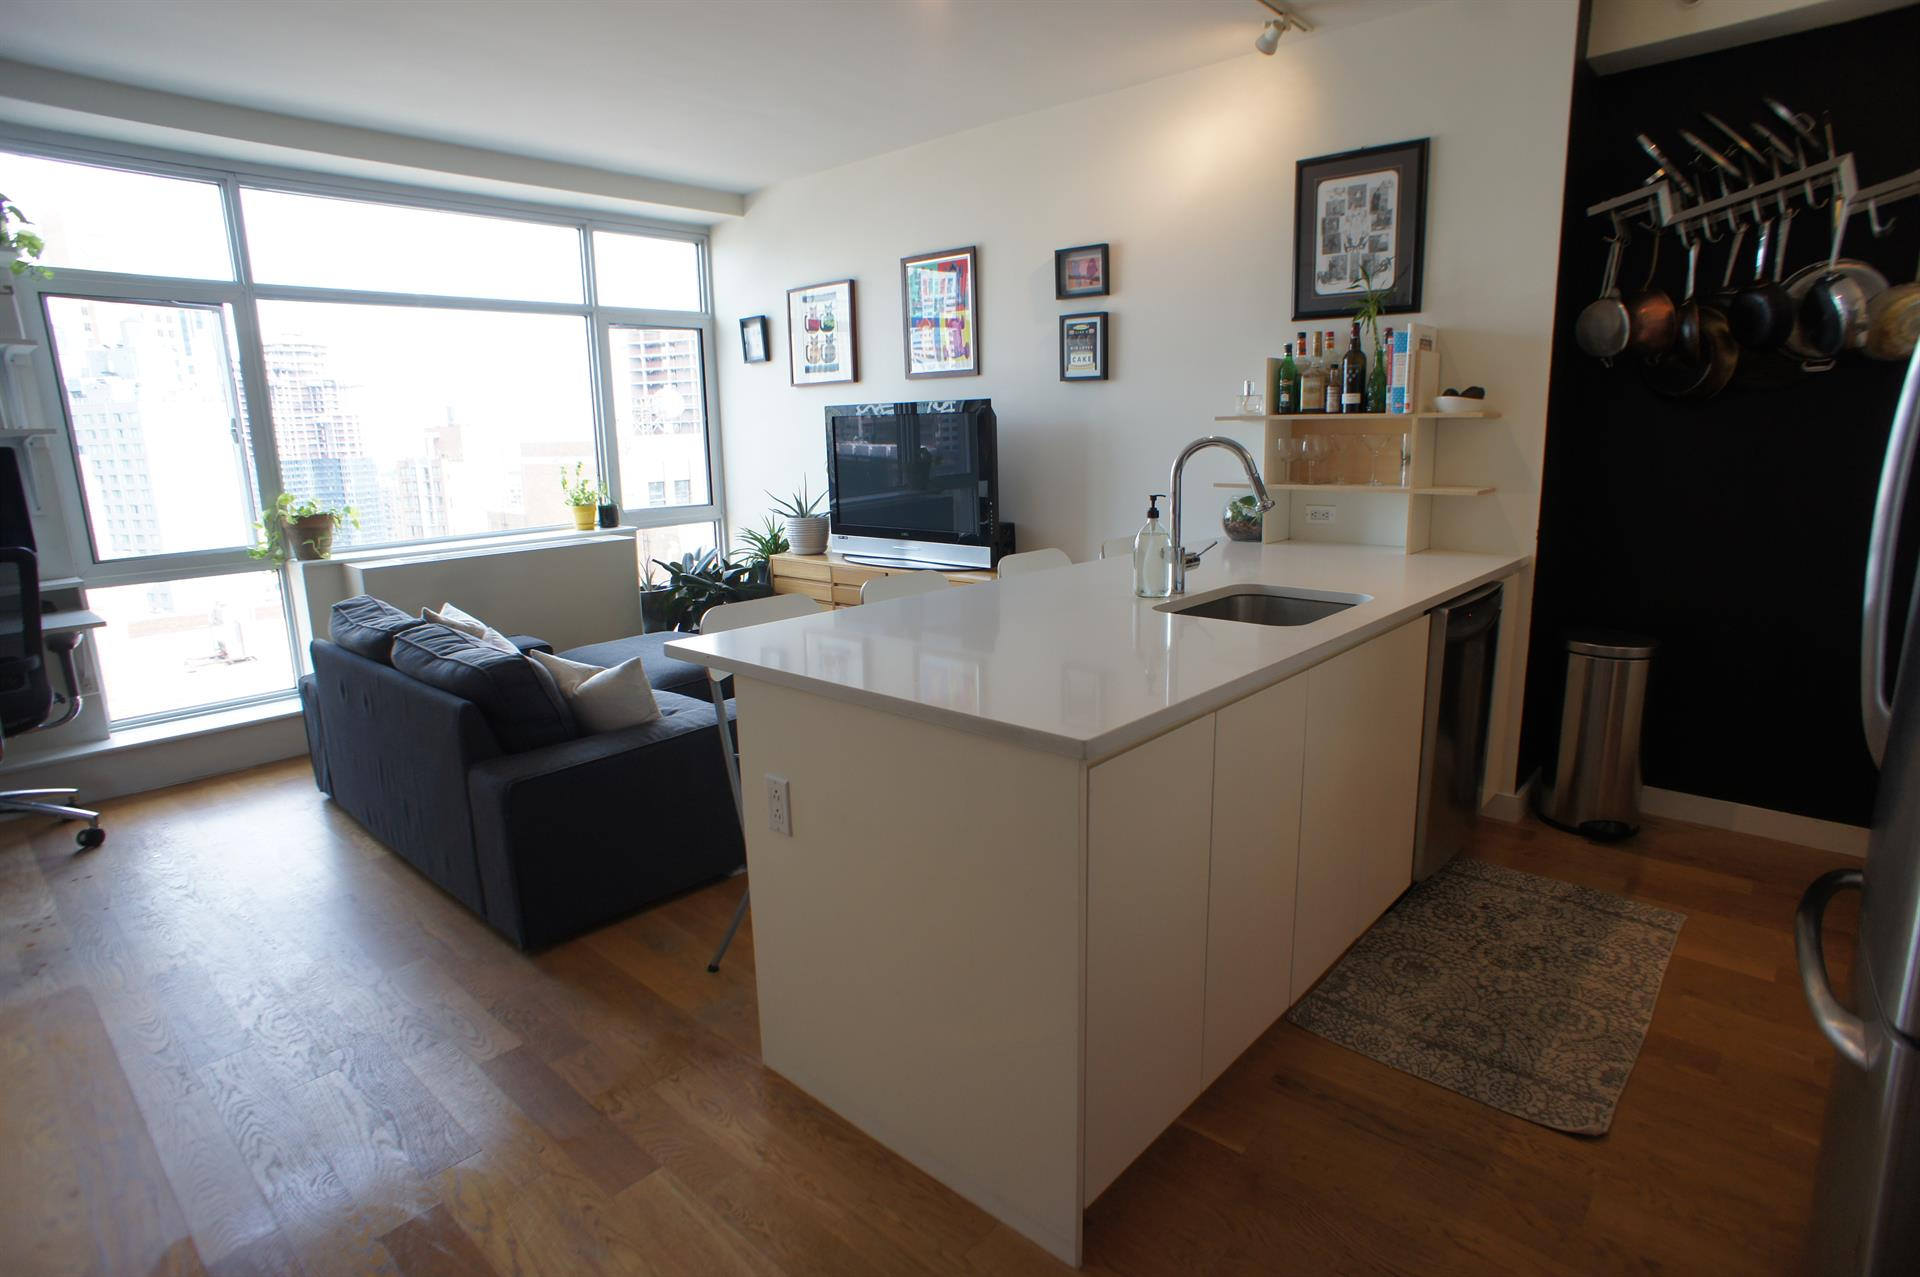 Condominium for Rent at 189 Schermerhorn St 23g Brooklyn, New York 11201 United States